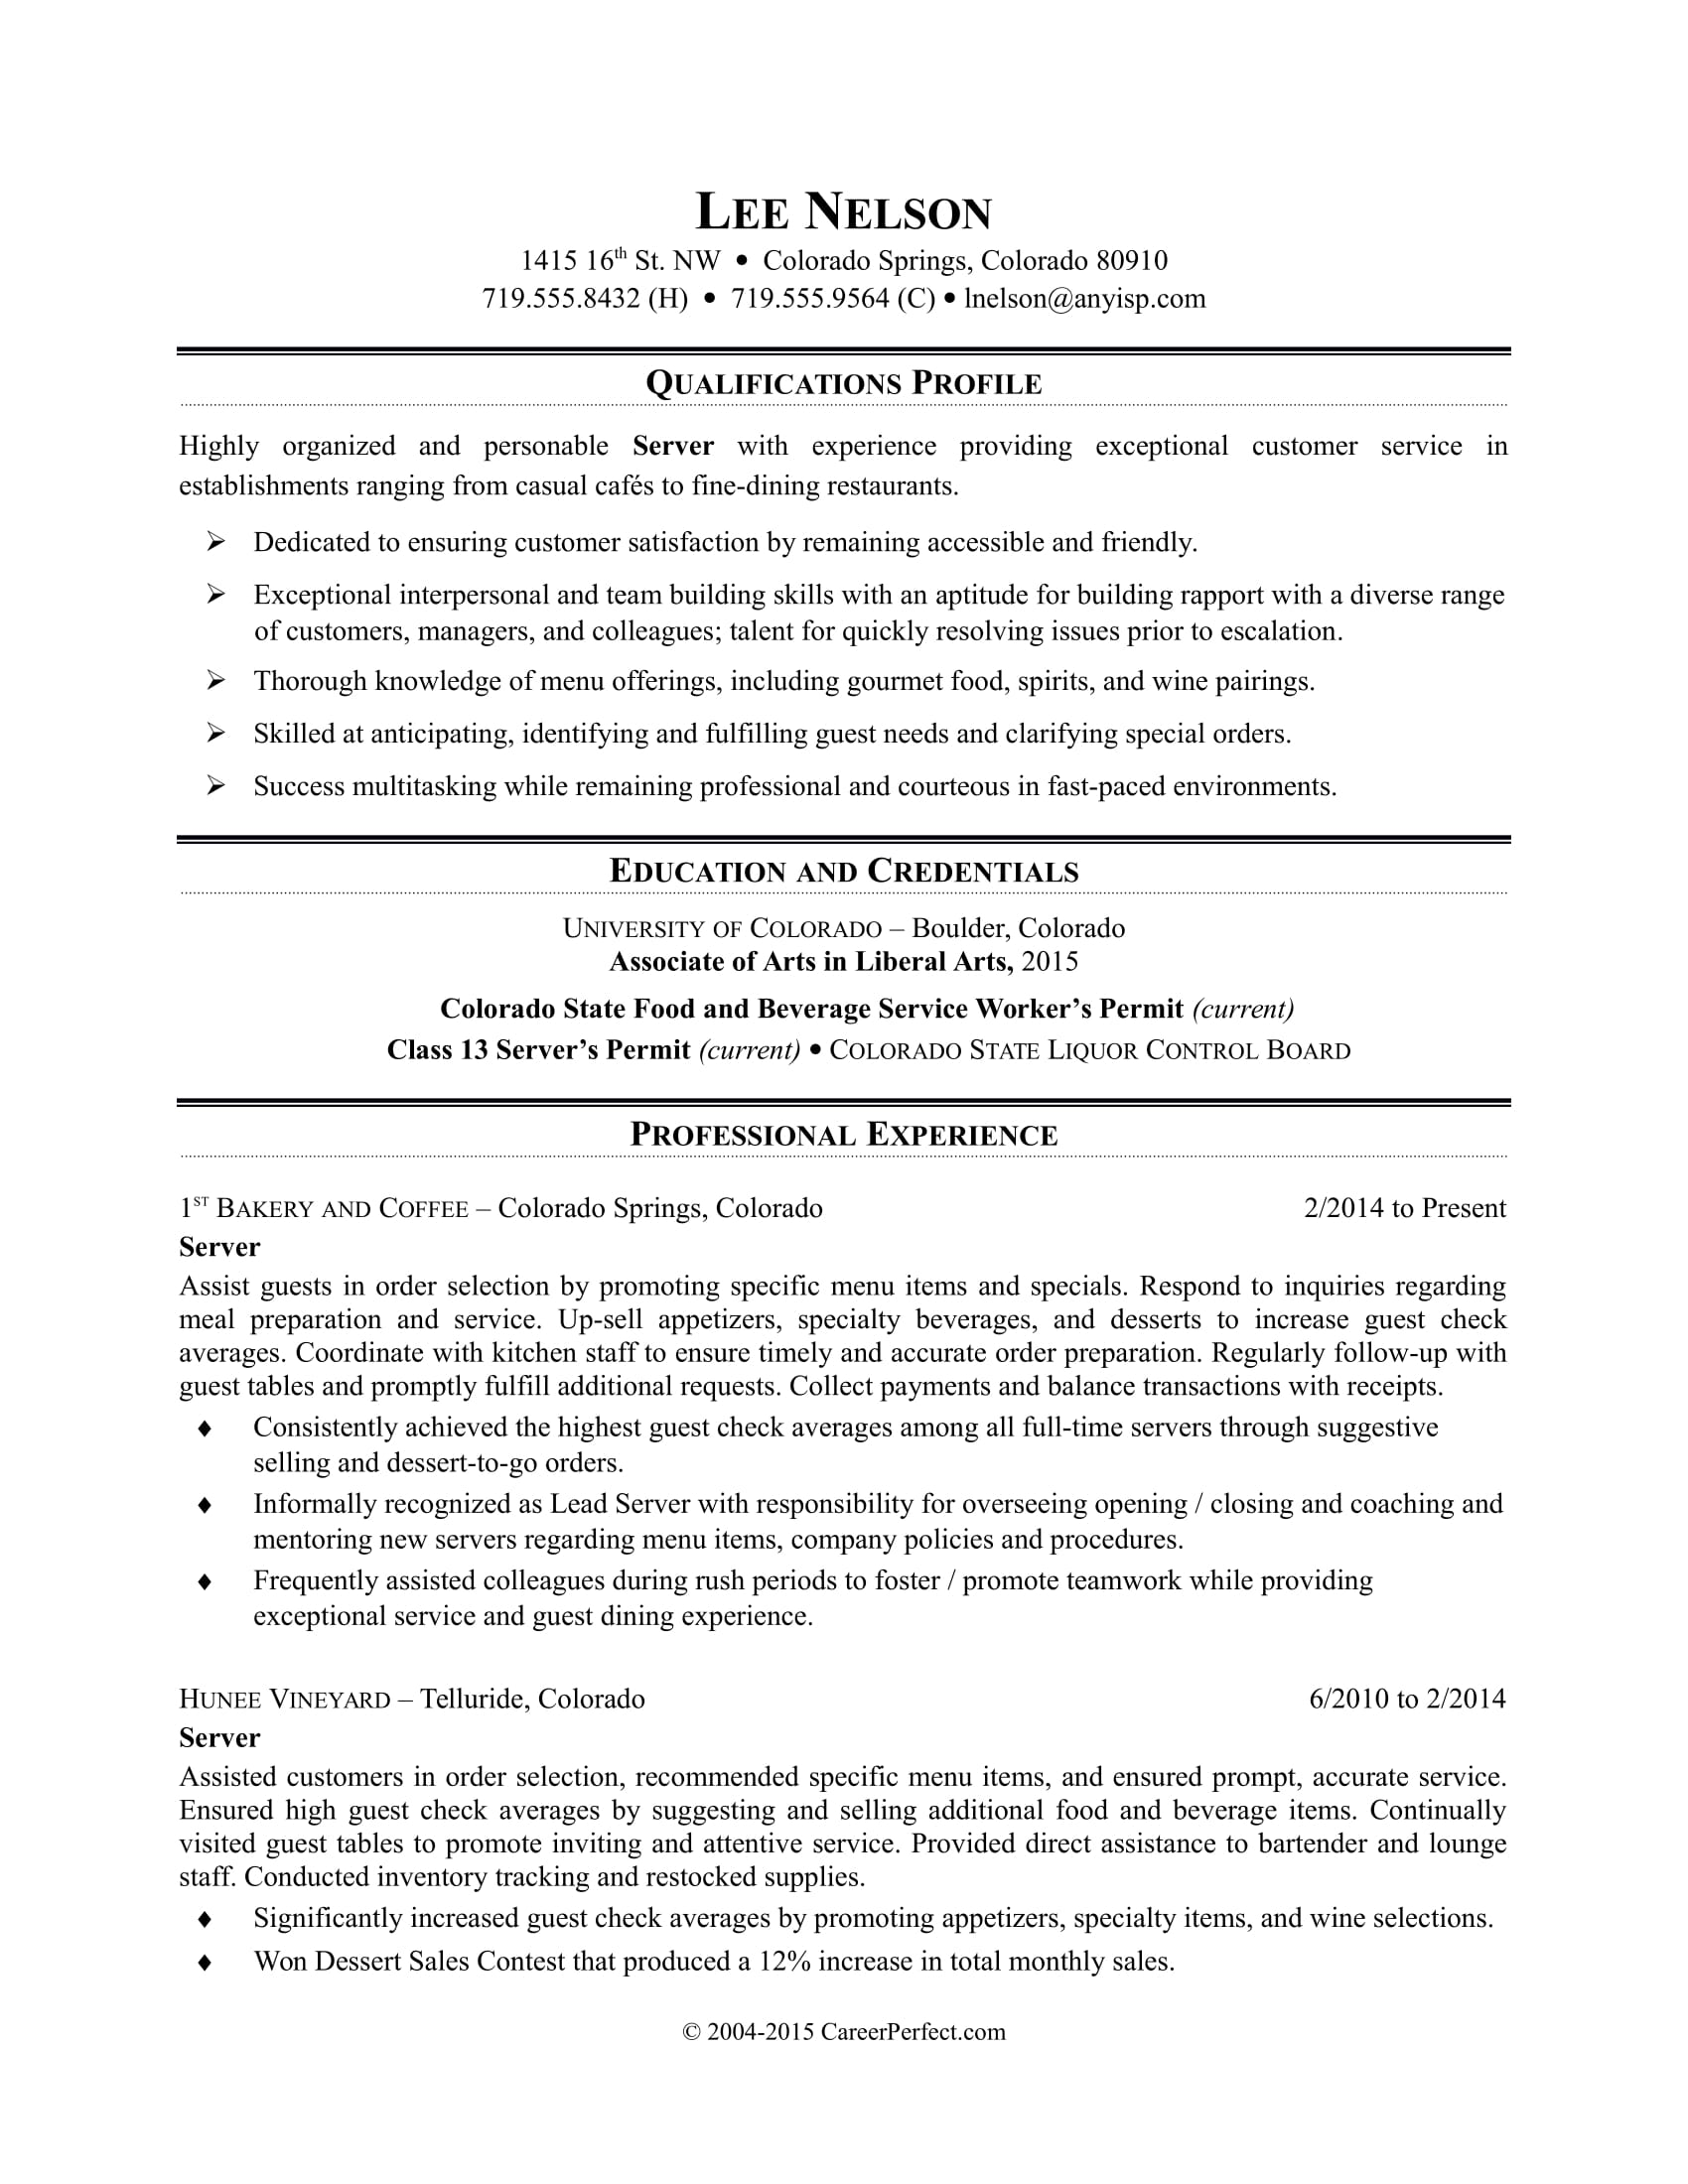 sample resume for a restaurant server - Resume Sample For Server